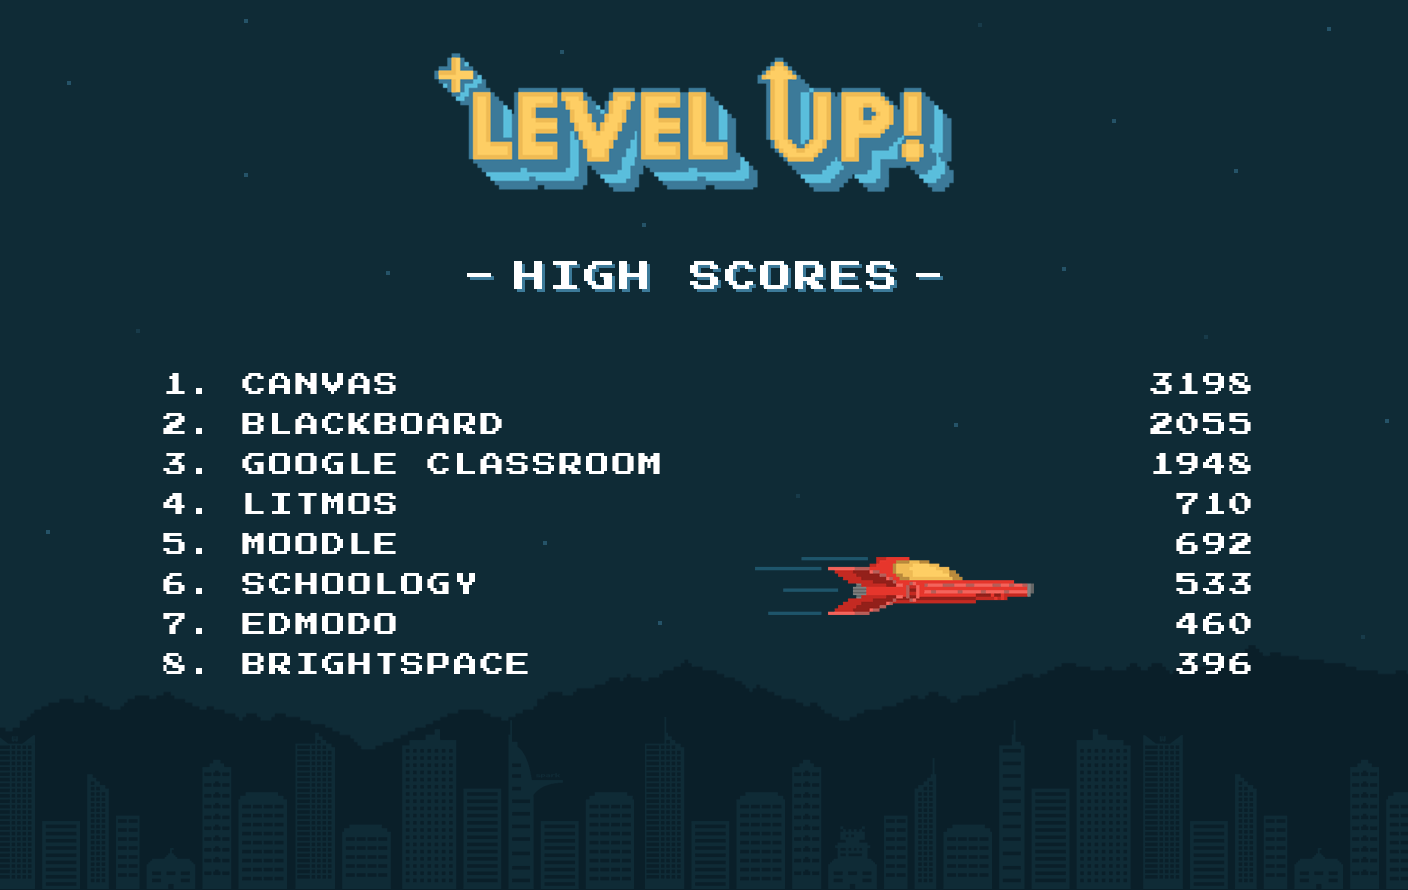 Level Up! Canvas Average User Ratings - Preferred LMS